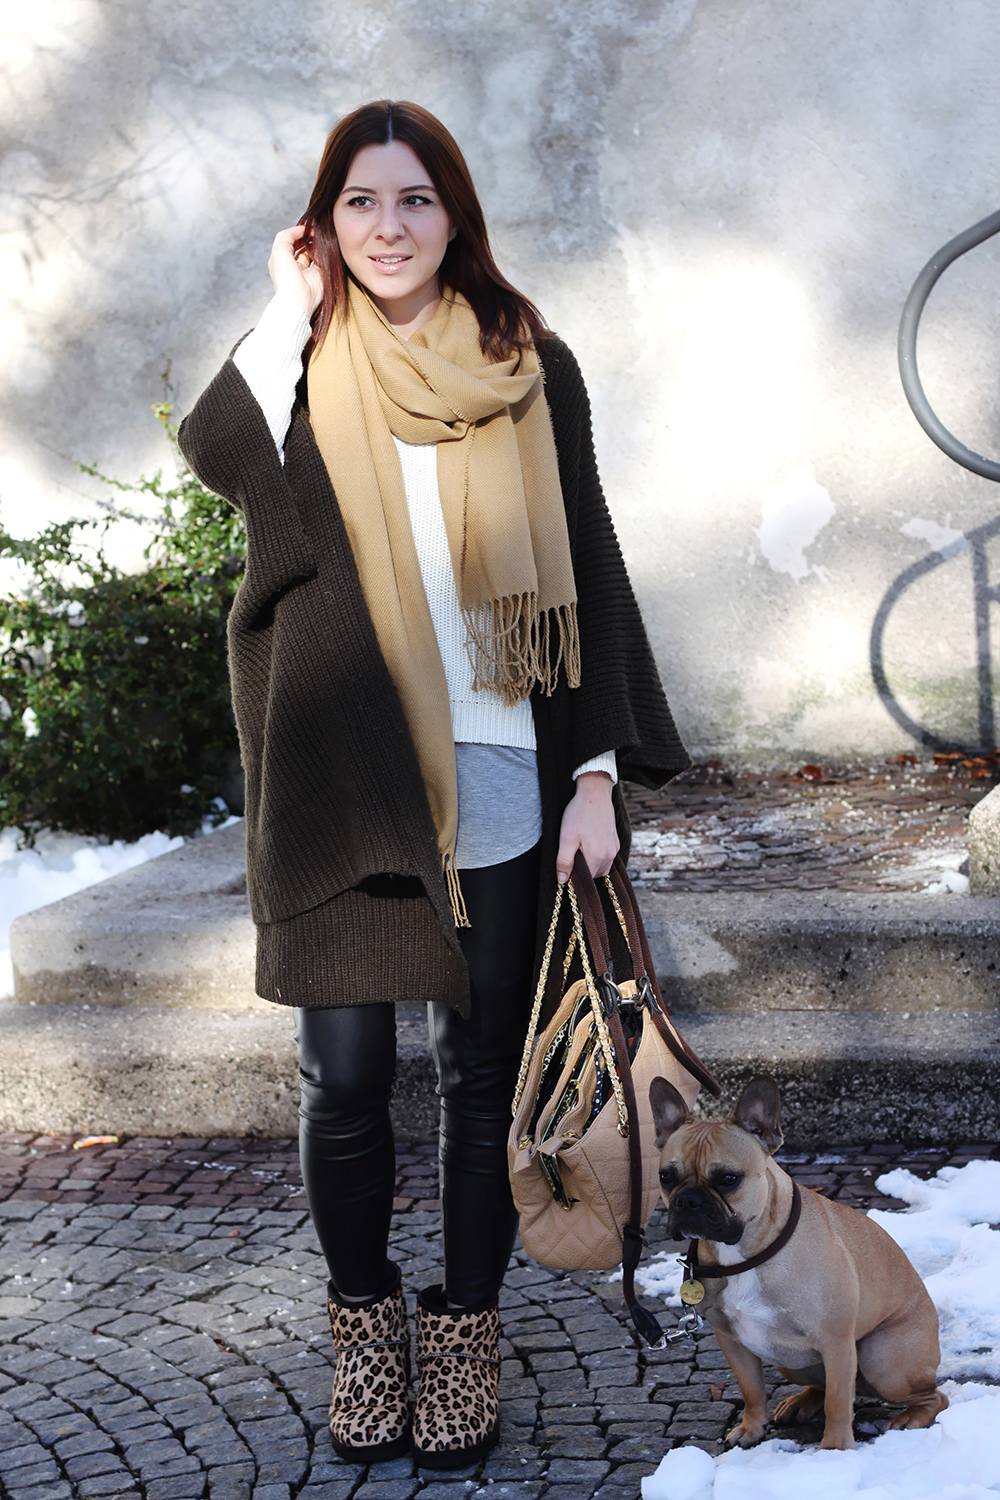 who is mocca, fashionblog, blogger, tirol, oesterreich, austria, foodblogger, frenchie, gesteppte tasche, layering, lagenlook, cape, lederhose, camel schal fransen forever21, ugg boots leo mini, ugg australia